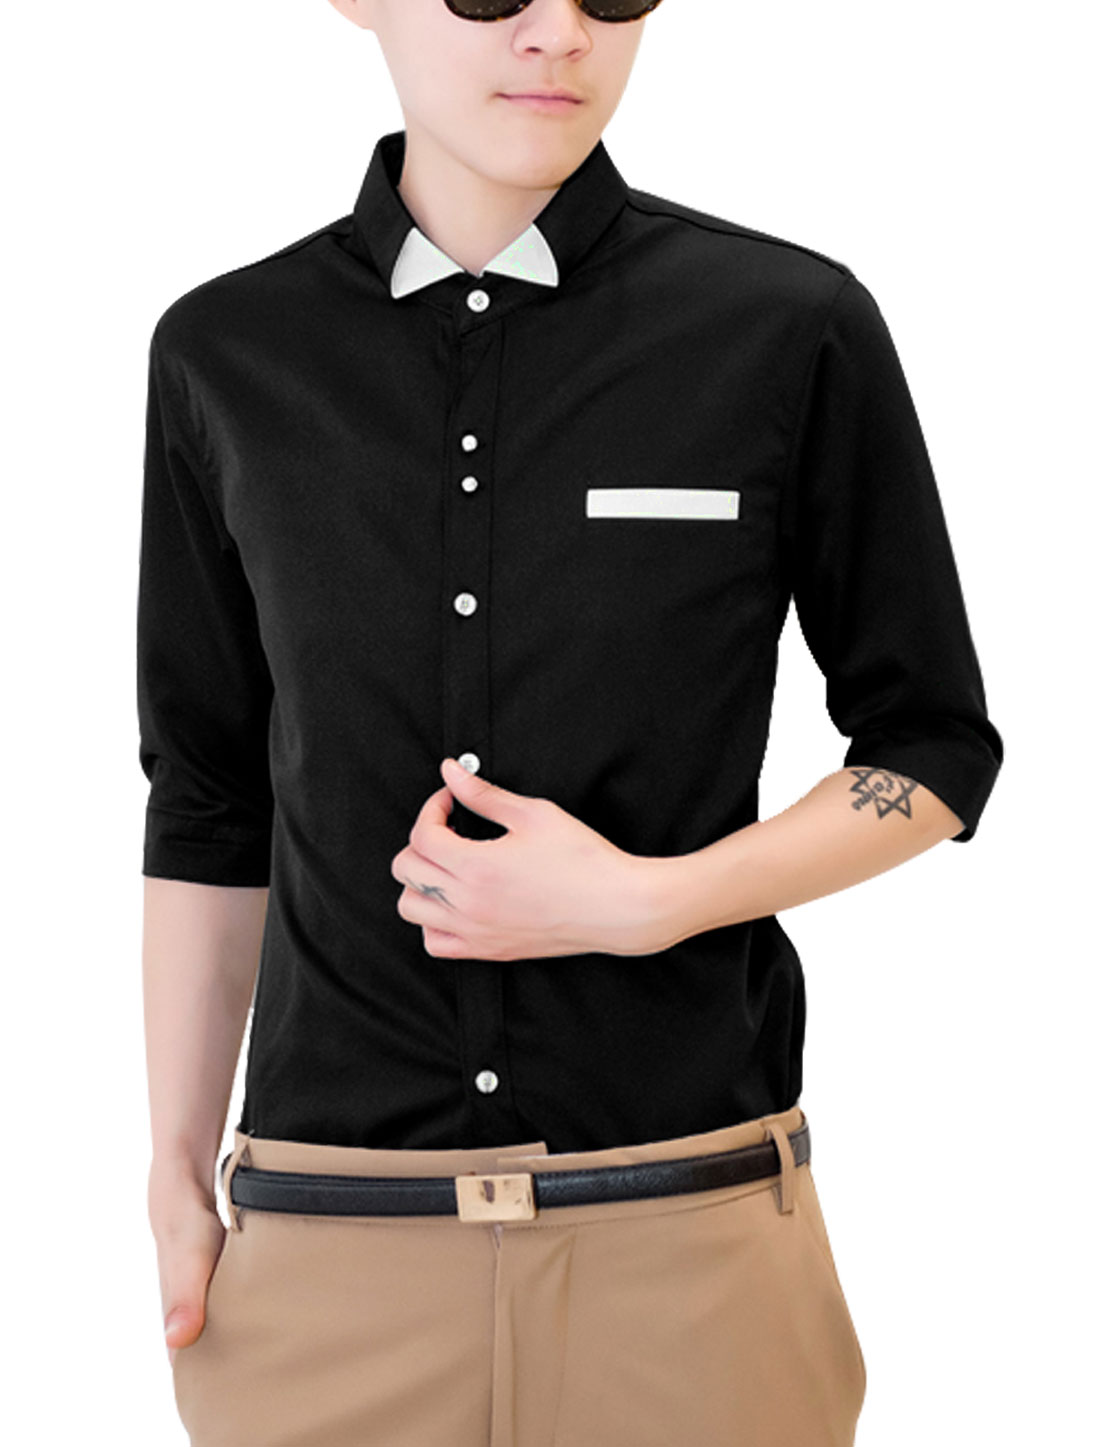 Men Elbow Sleeve Mock Chest Pocket Cozy Fit Top Shirt Black S